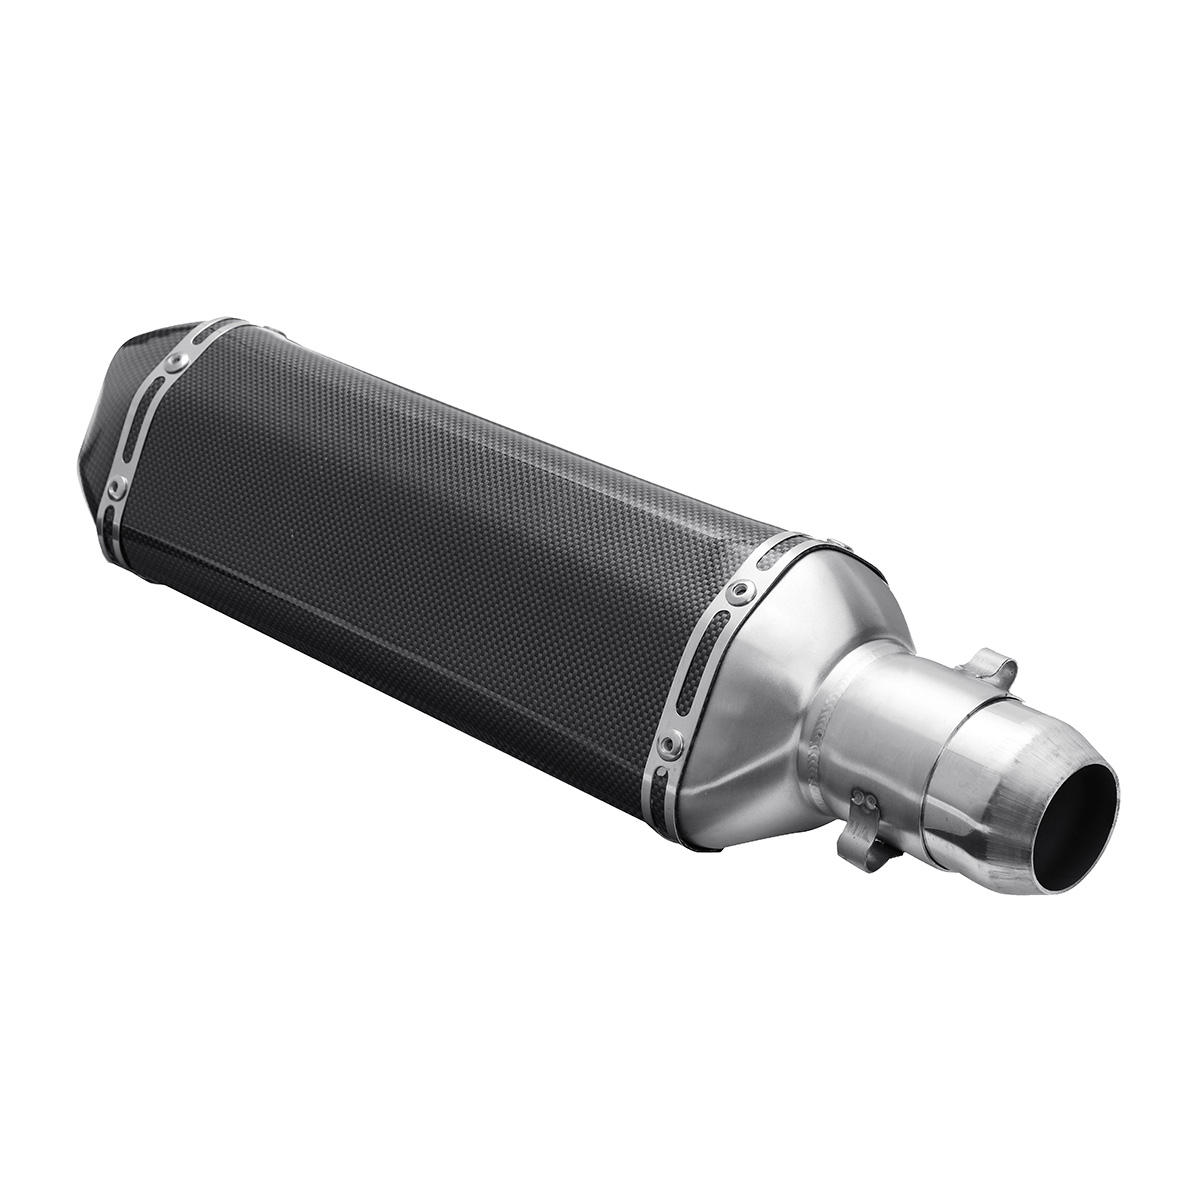 38mm-51mm Motorcycle Exhaust Muffler With Removable Silencer Carbon fiber Color